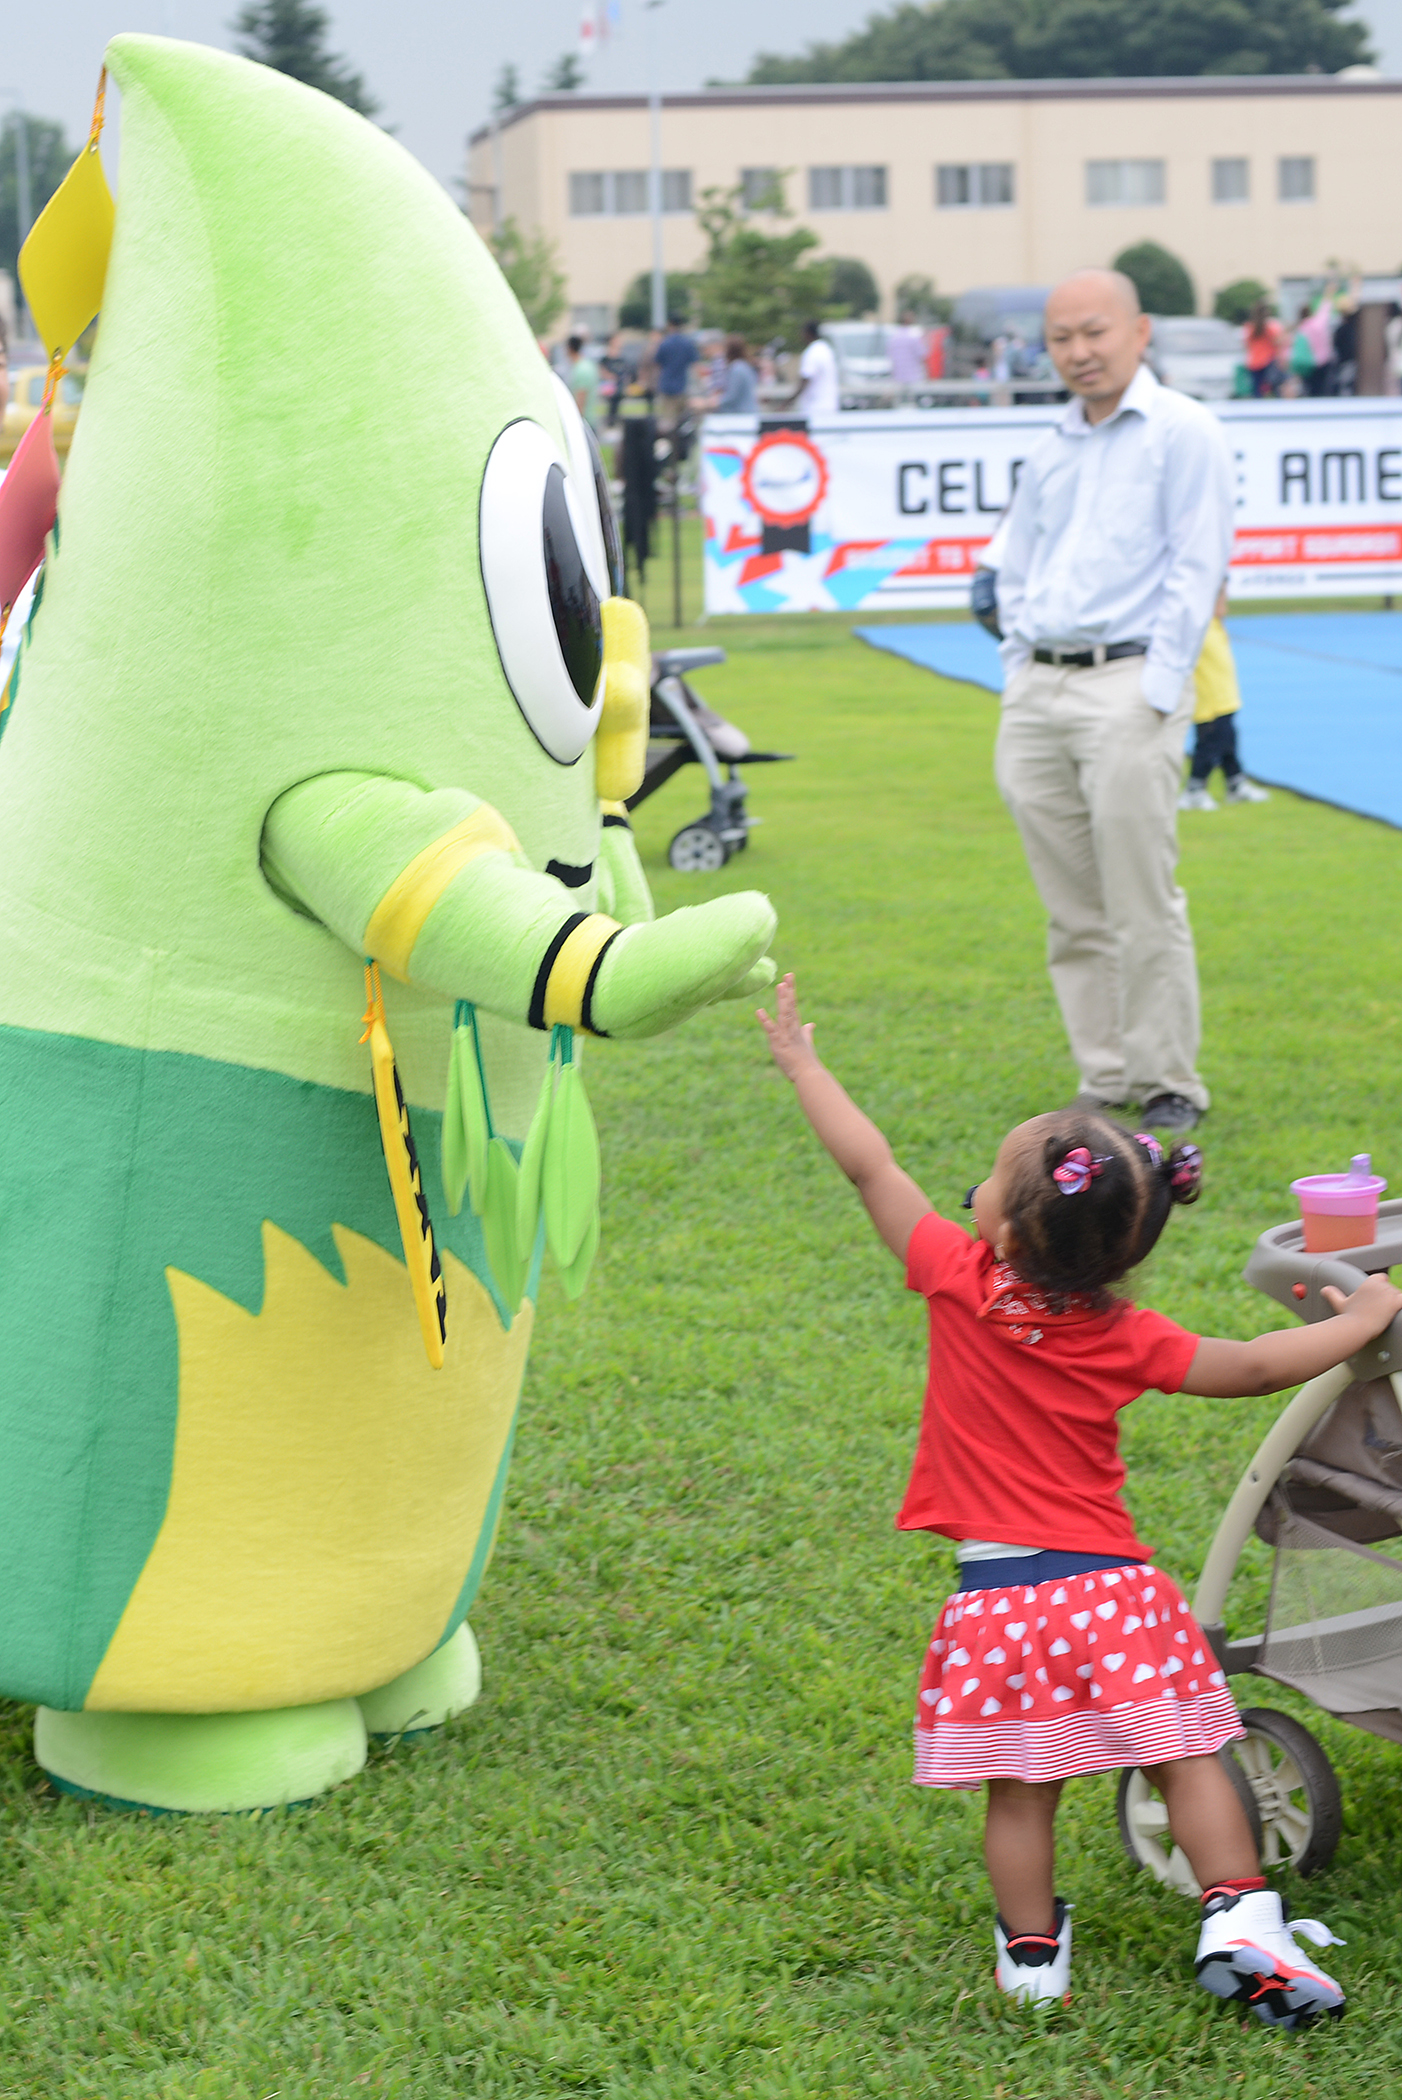 A child high-fives Takke the bamboo, mascot for Fussa city, during the Celebrate America at Yokota Air Base, Japan, July 2, 2015. Yokota borders five municipal cities, each with their own mascot. (U.S. Air Force photo by Airman 1st Class David C. Danford/Released)